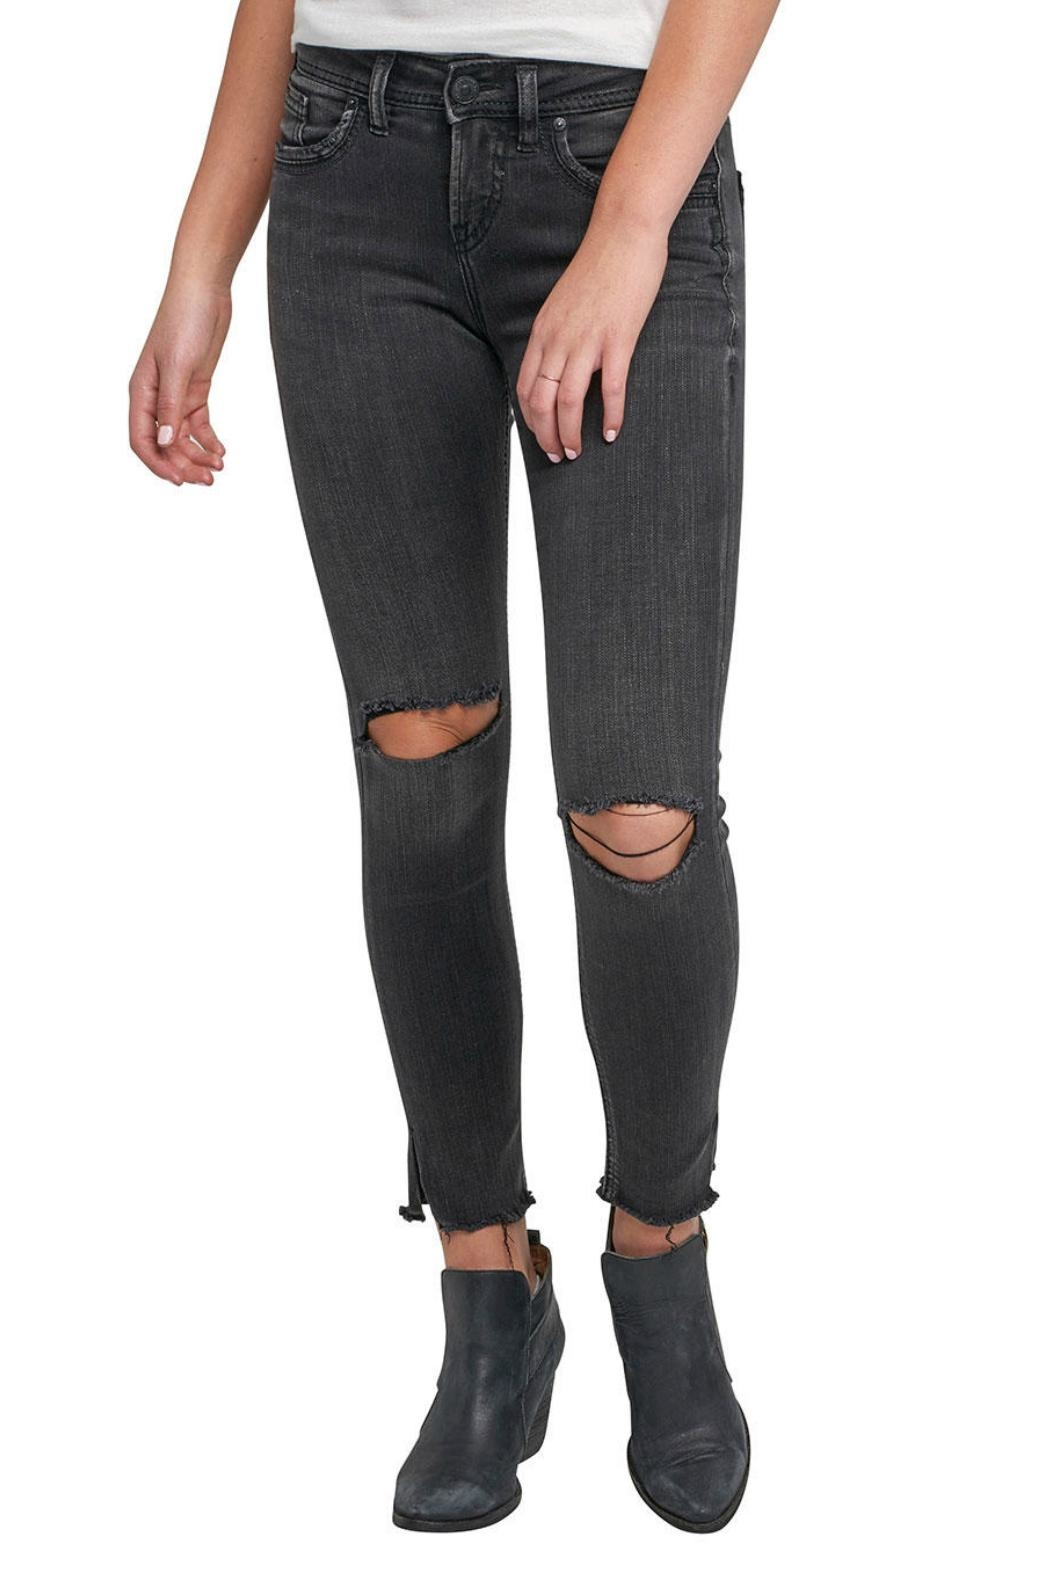 Silver Jeans Co. Avery Ankle Jeans - Main Image